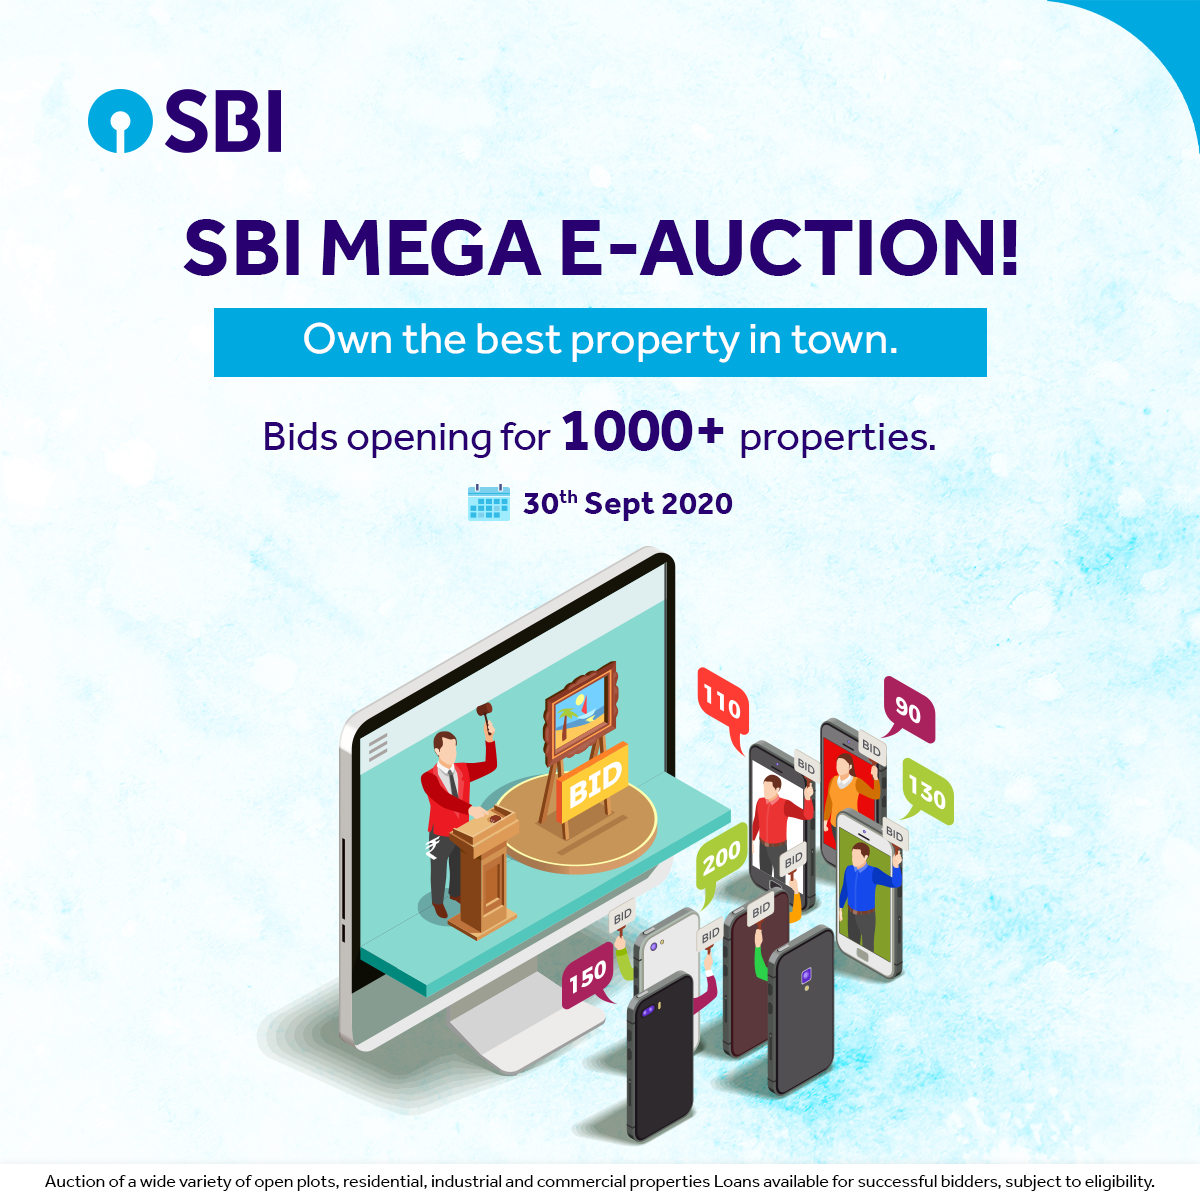 Planning To Invest In Properties Register For Sbi Mega E Auction Https Bank Sbi Web Sbi In The News Big Data Technologies Investment Property Bank Of India